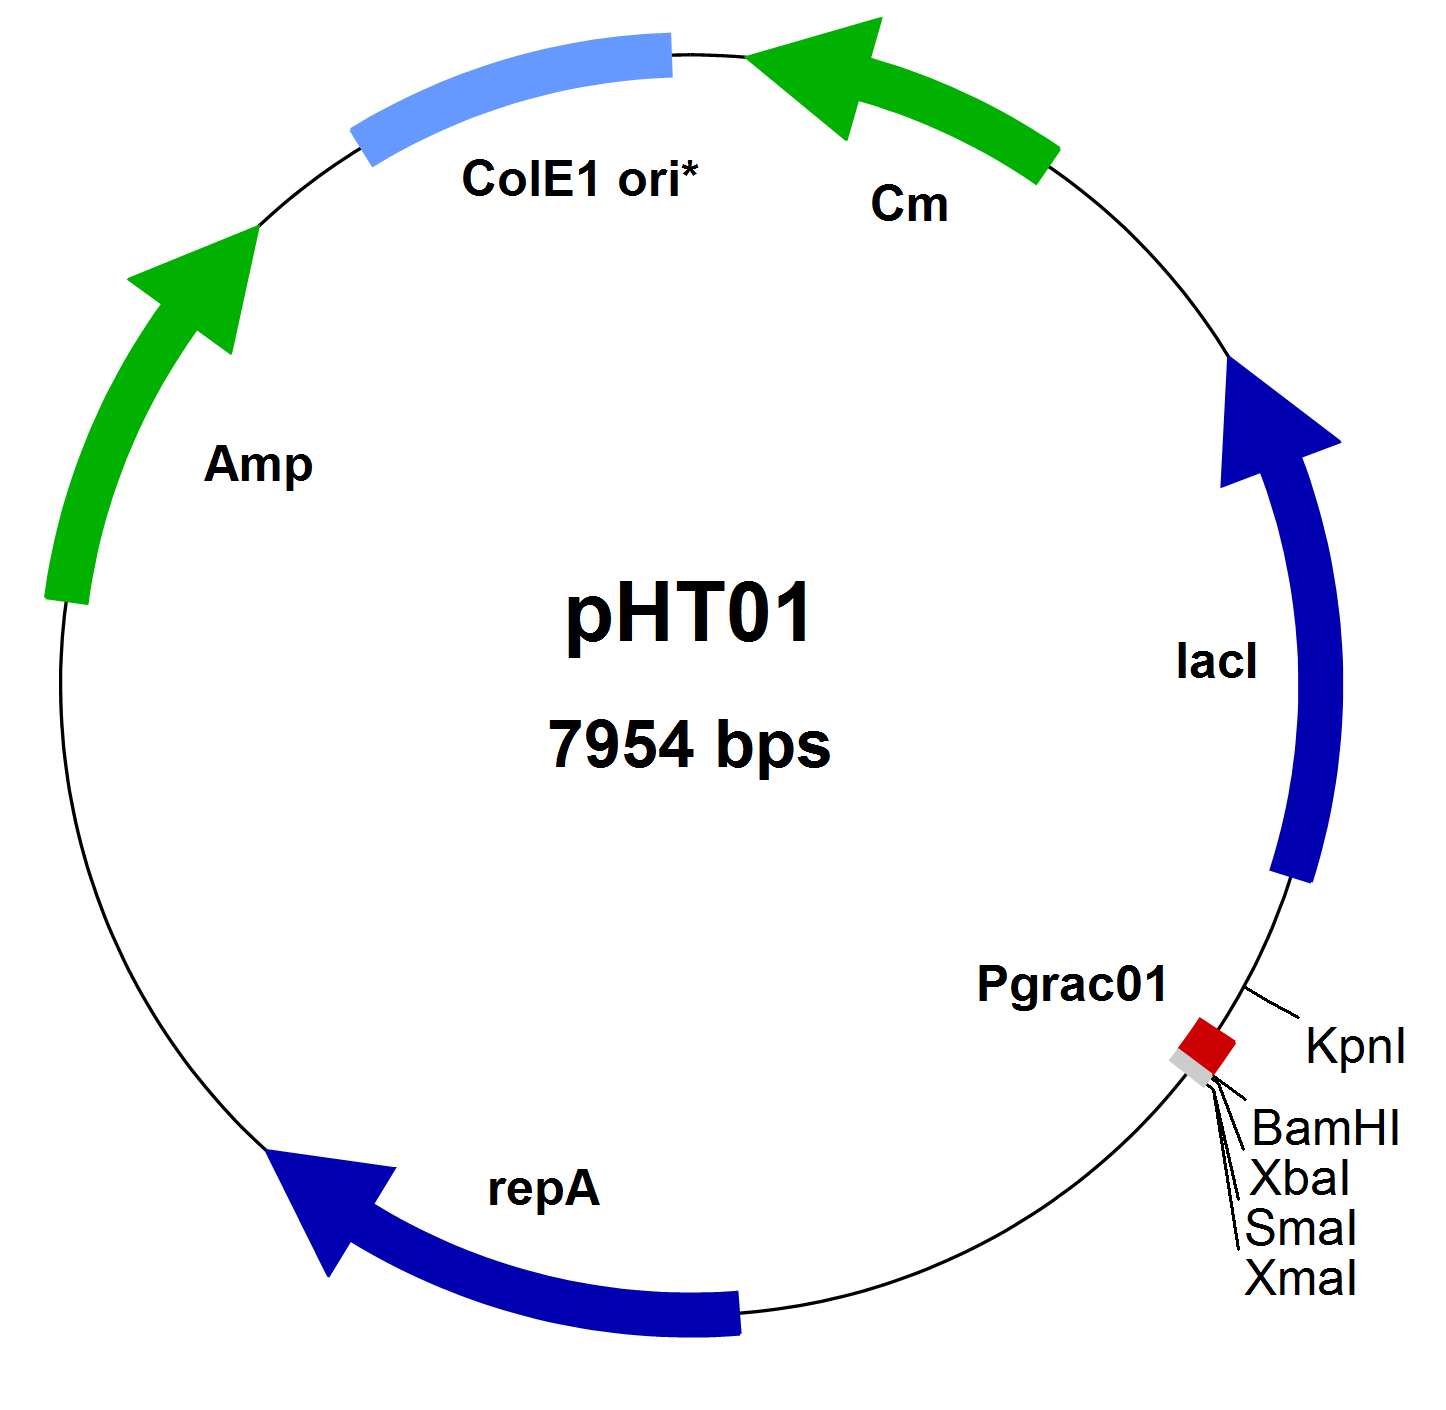 MoBiTec/pHT01 vector, lyophilized plasmid DNA/Bacillus Expression Systems/PBS001